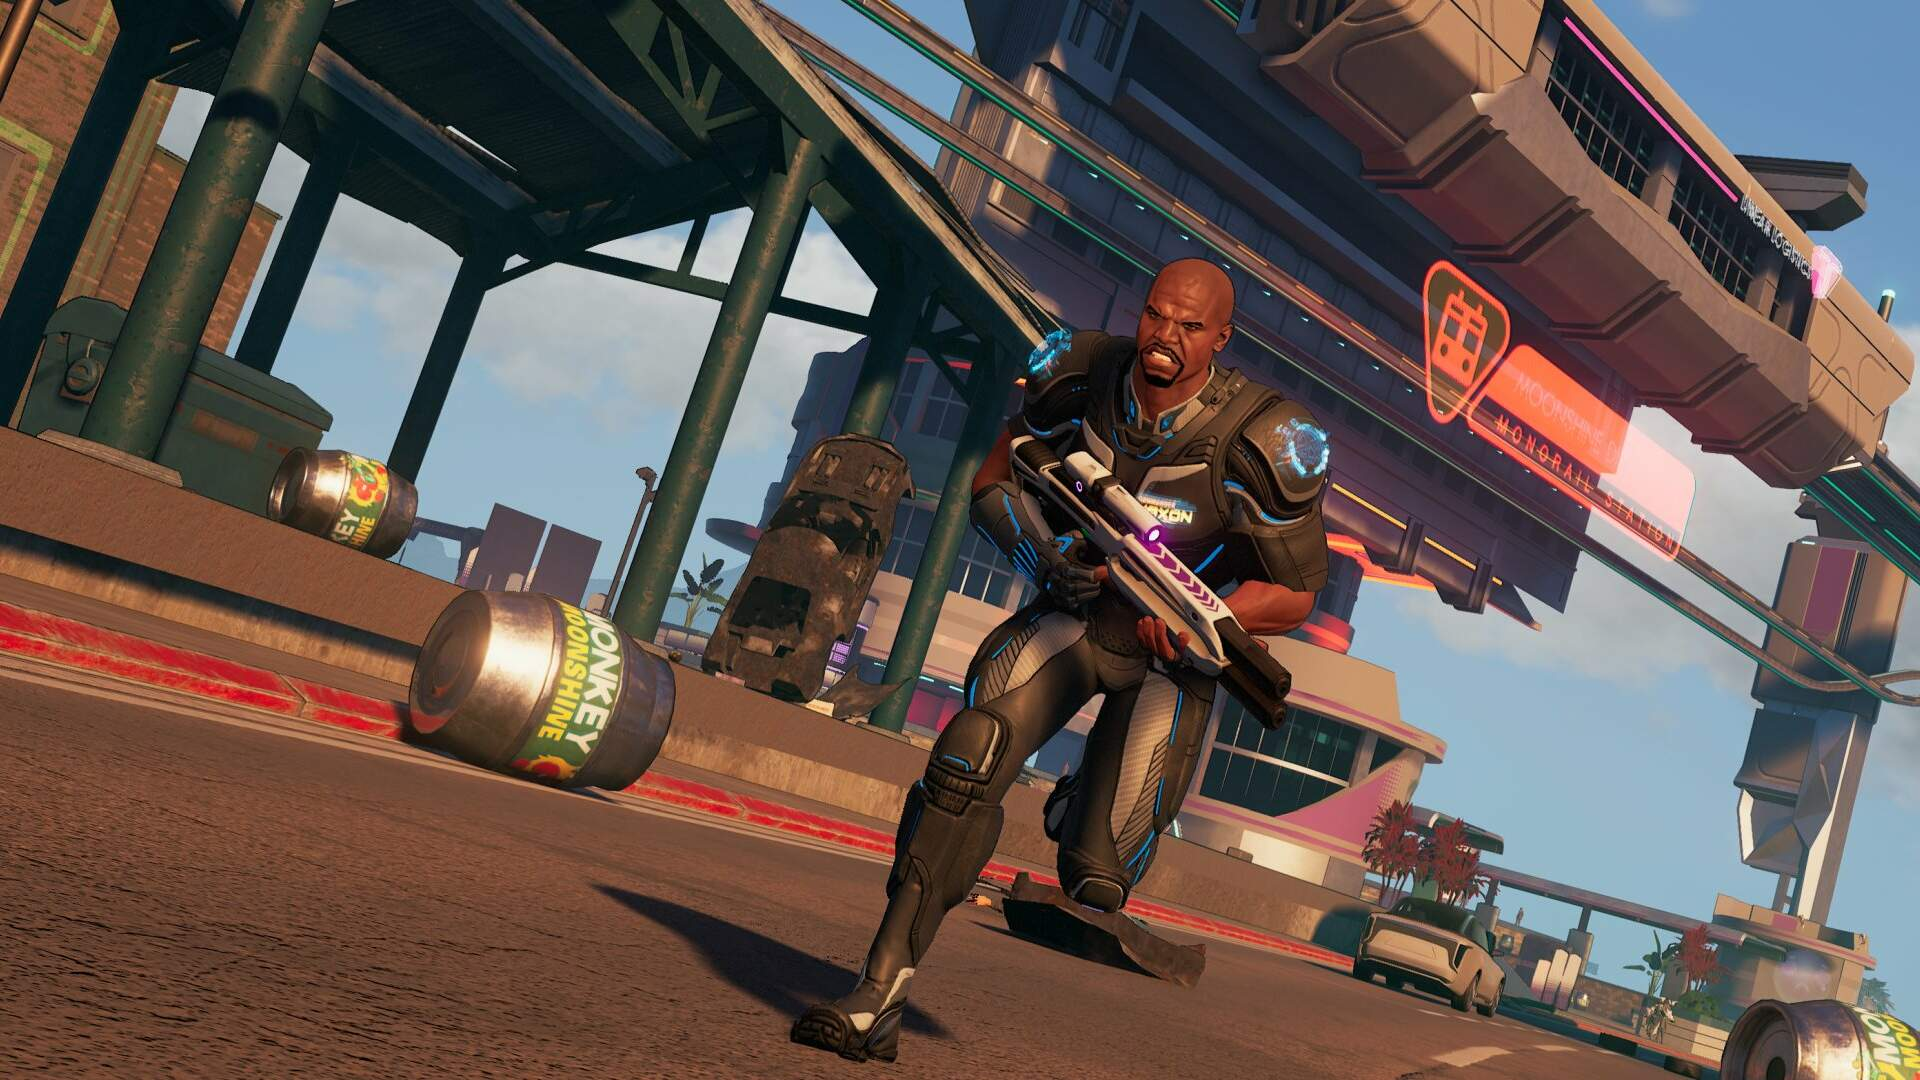 Crackdown 3 Tips - Agility Orbs, Bosses, Fast Travel